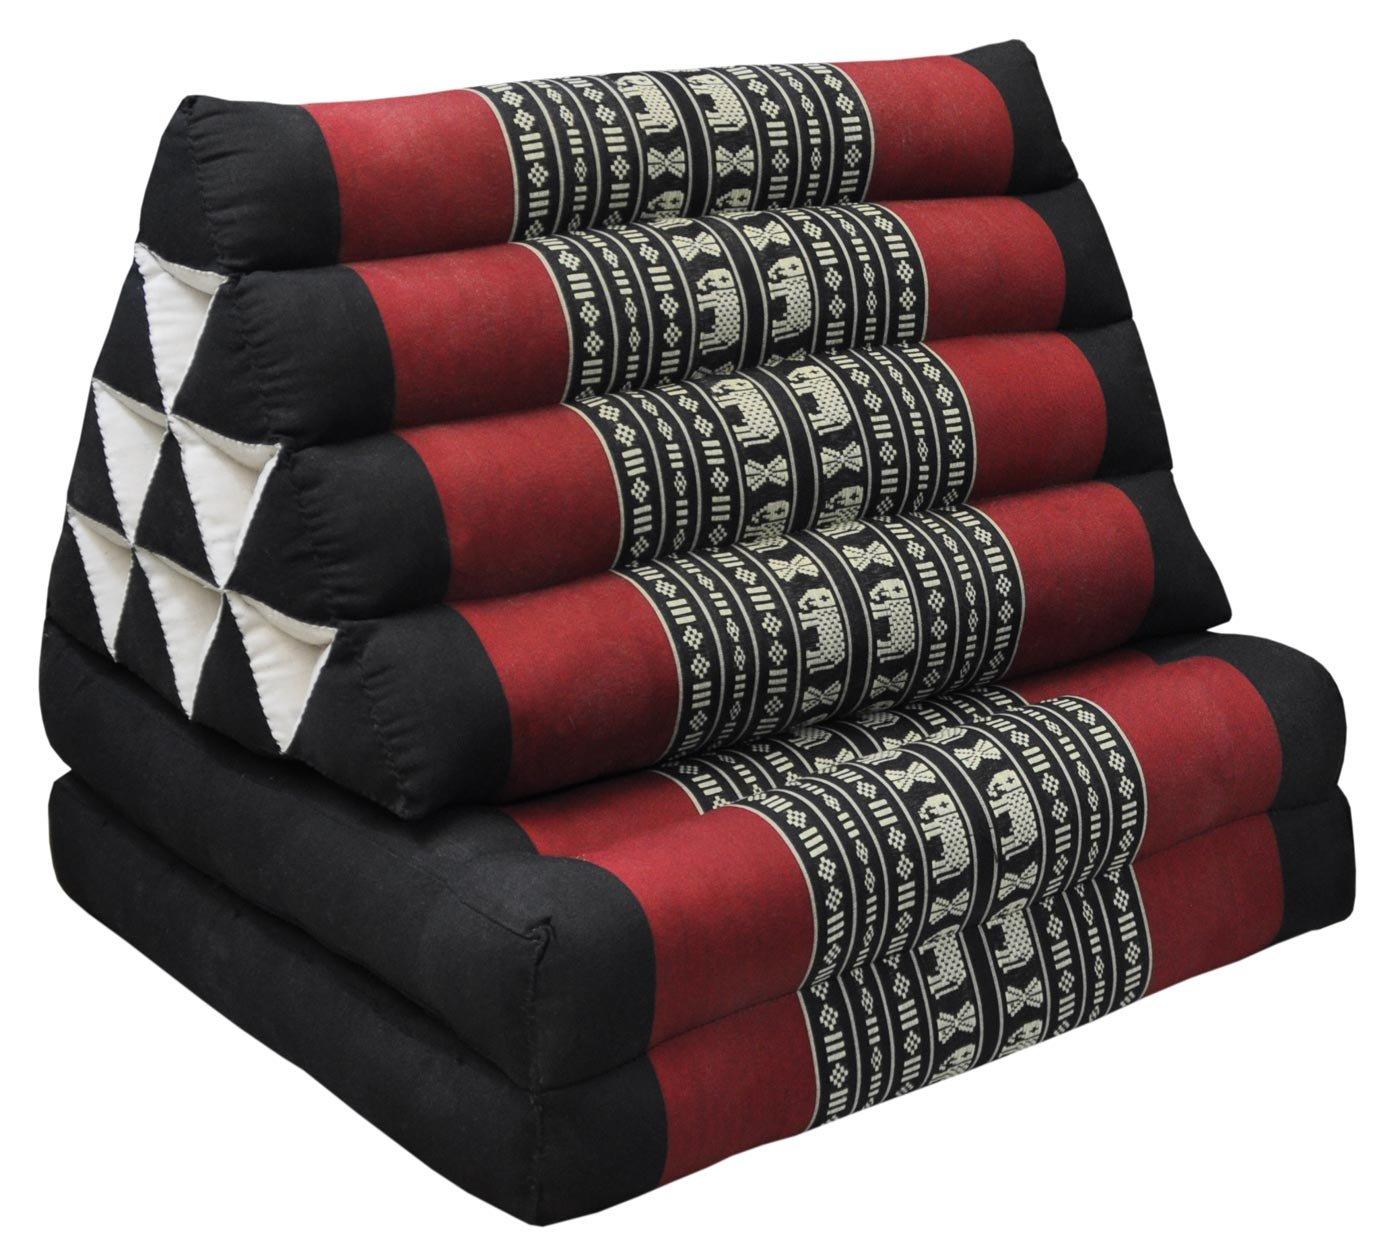 Thai triangular cushion with mattress 2 folds, black/red, relaxation, beach, pool, meditation garden (81602)